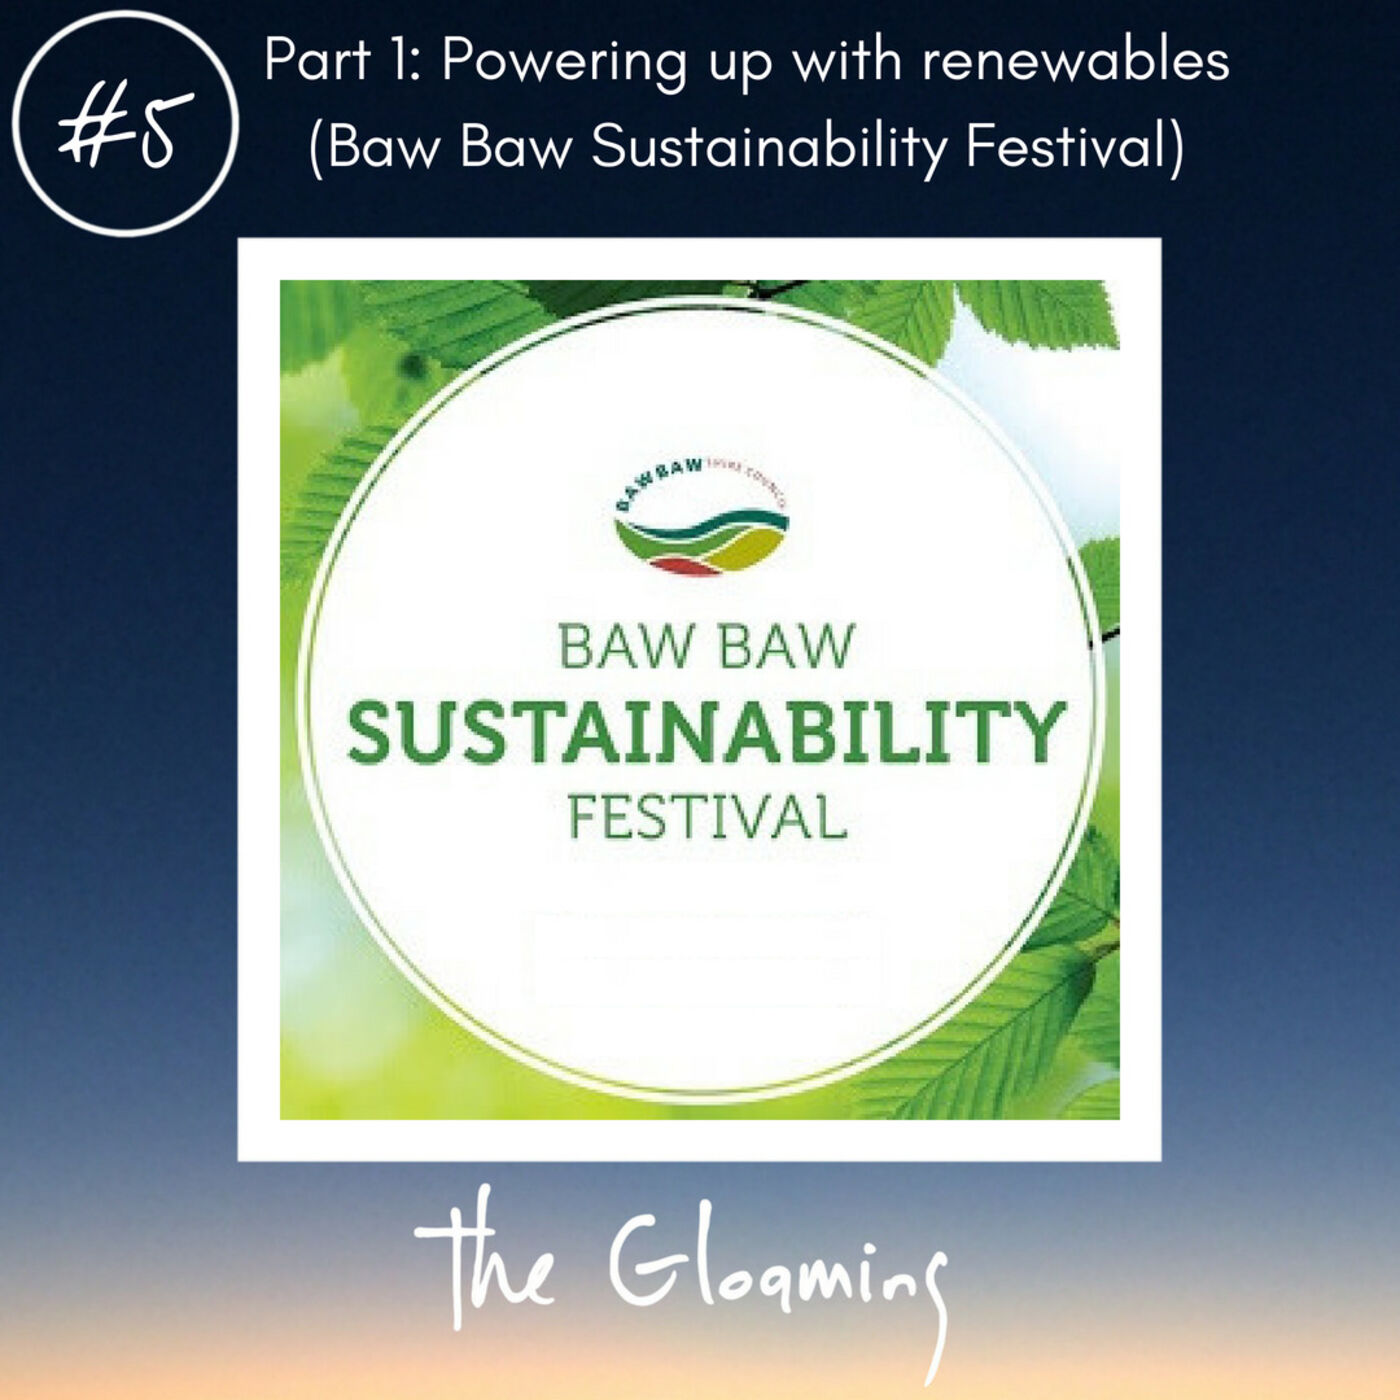 TG5: Powering up with renewables (Baw Baw Sustainability Festival - Part 1)